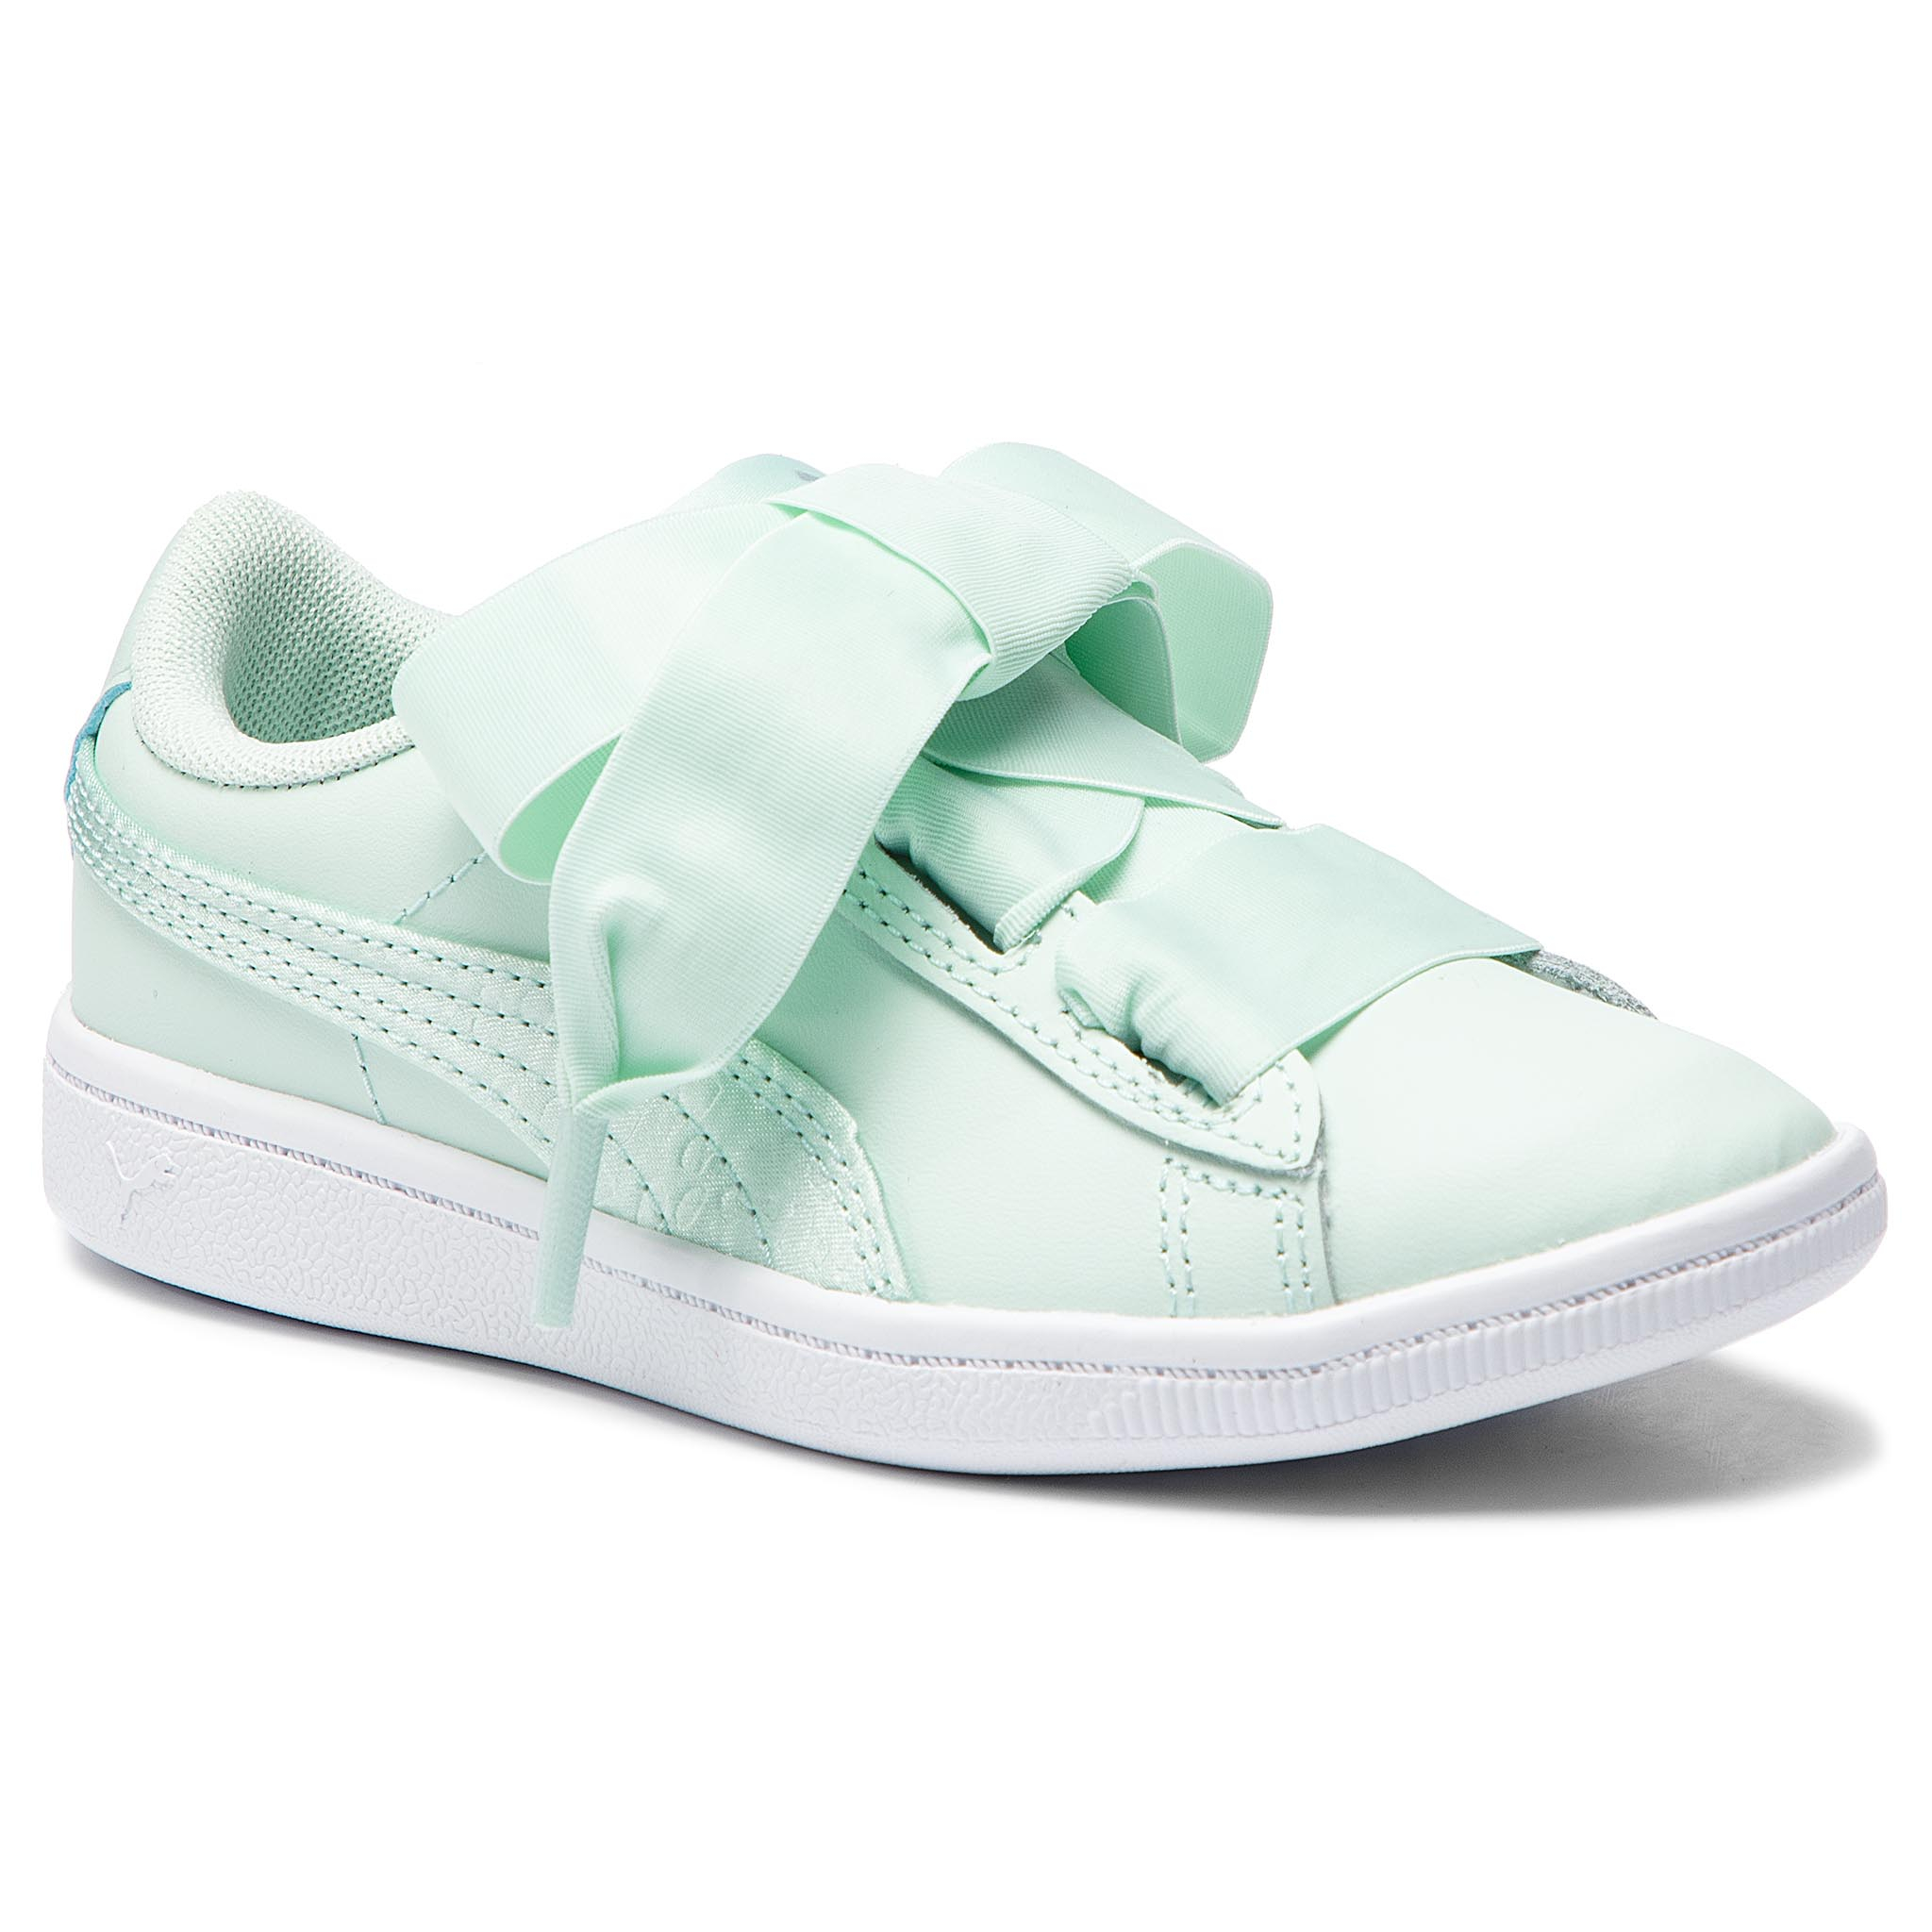 Sneakersy PUMA – Vikky Ribbon L Satin Ps 369543 01 Fair Aqua/Fair Aqua